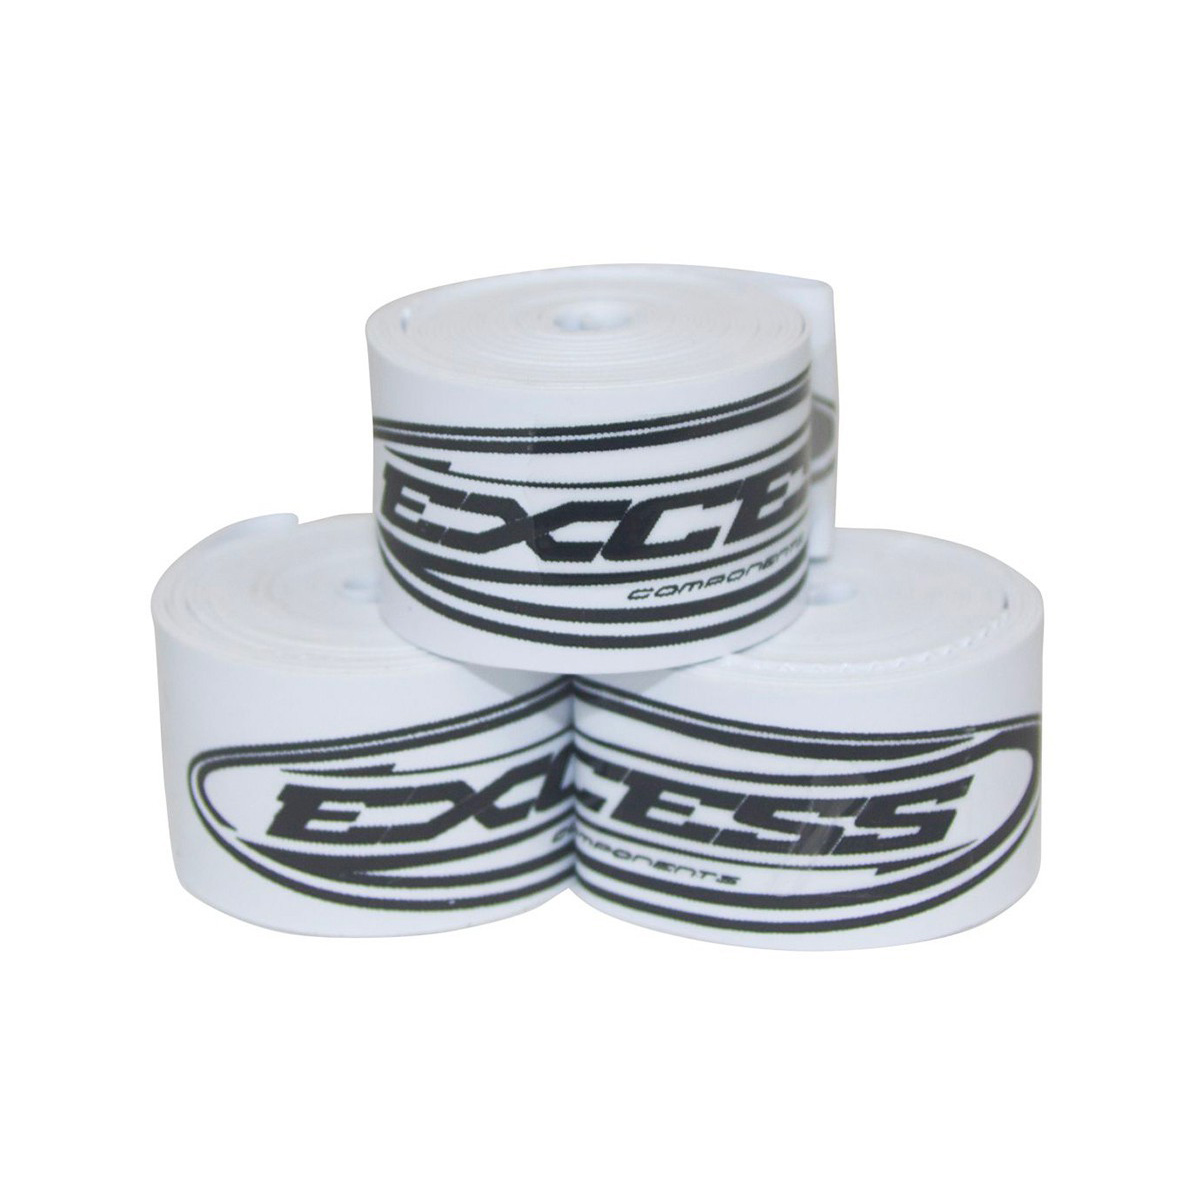 EXCESS RIM TAPES WHITE